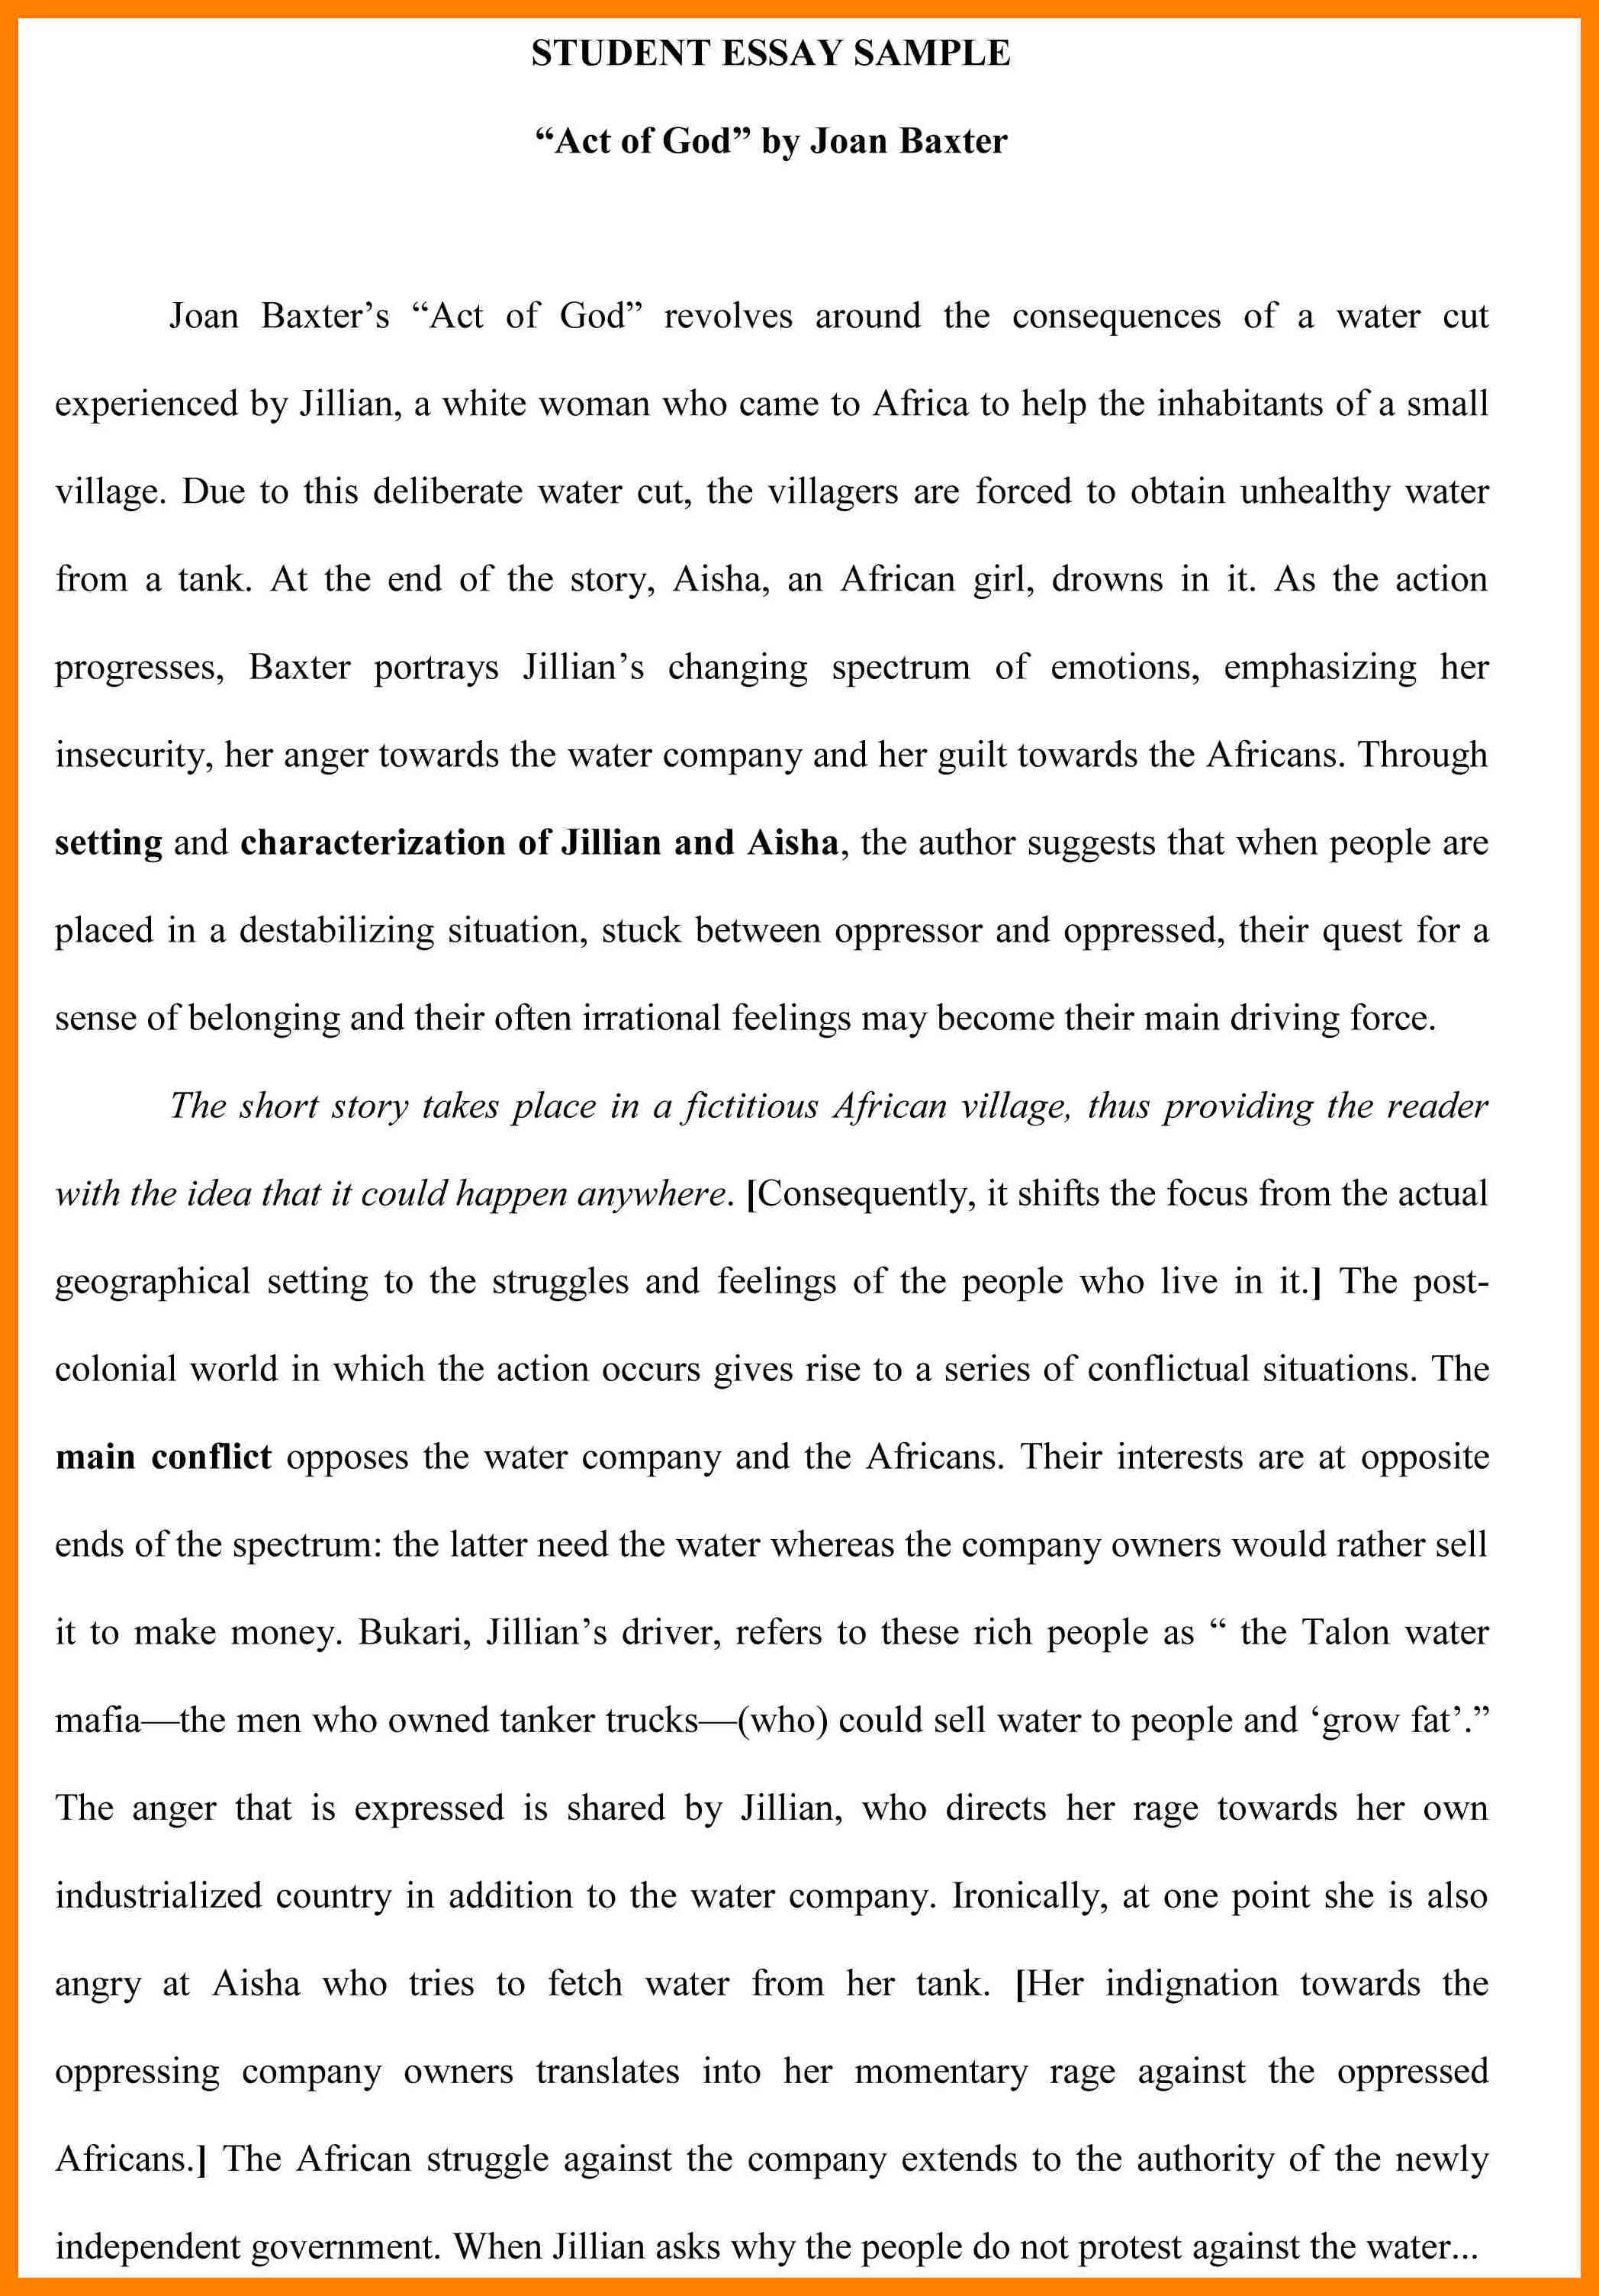 004 Essay Example How To Write An Act Sample Math Test Elmifermetures Com Ideas Collection Awesome Of Livesto Essays Pdf New Topics Dreaded 2018 Template Full